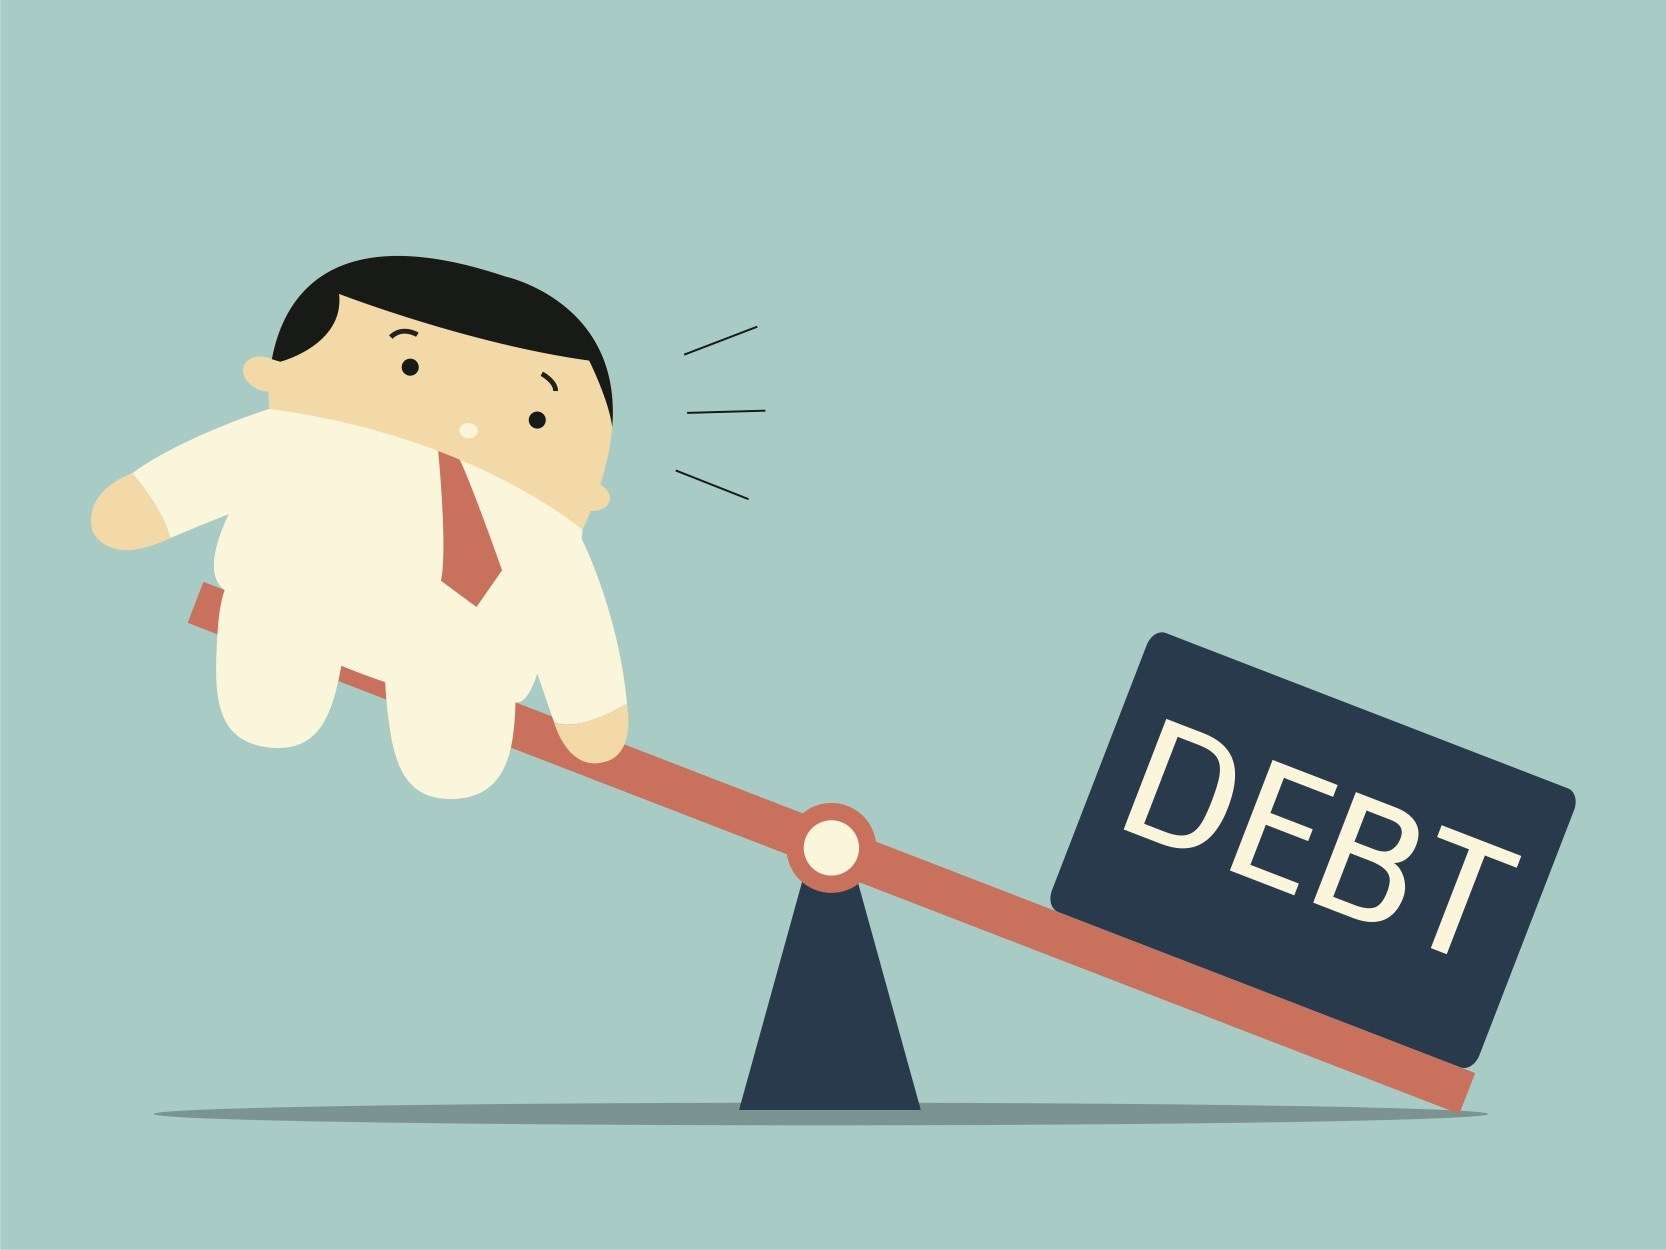 When You Should Consider a Debt Consolidation Loan